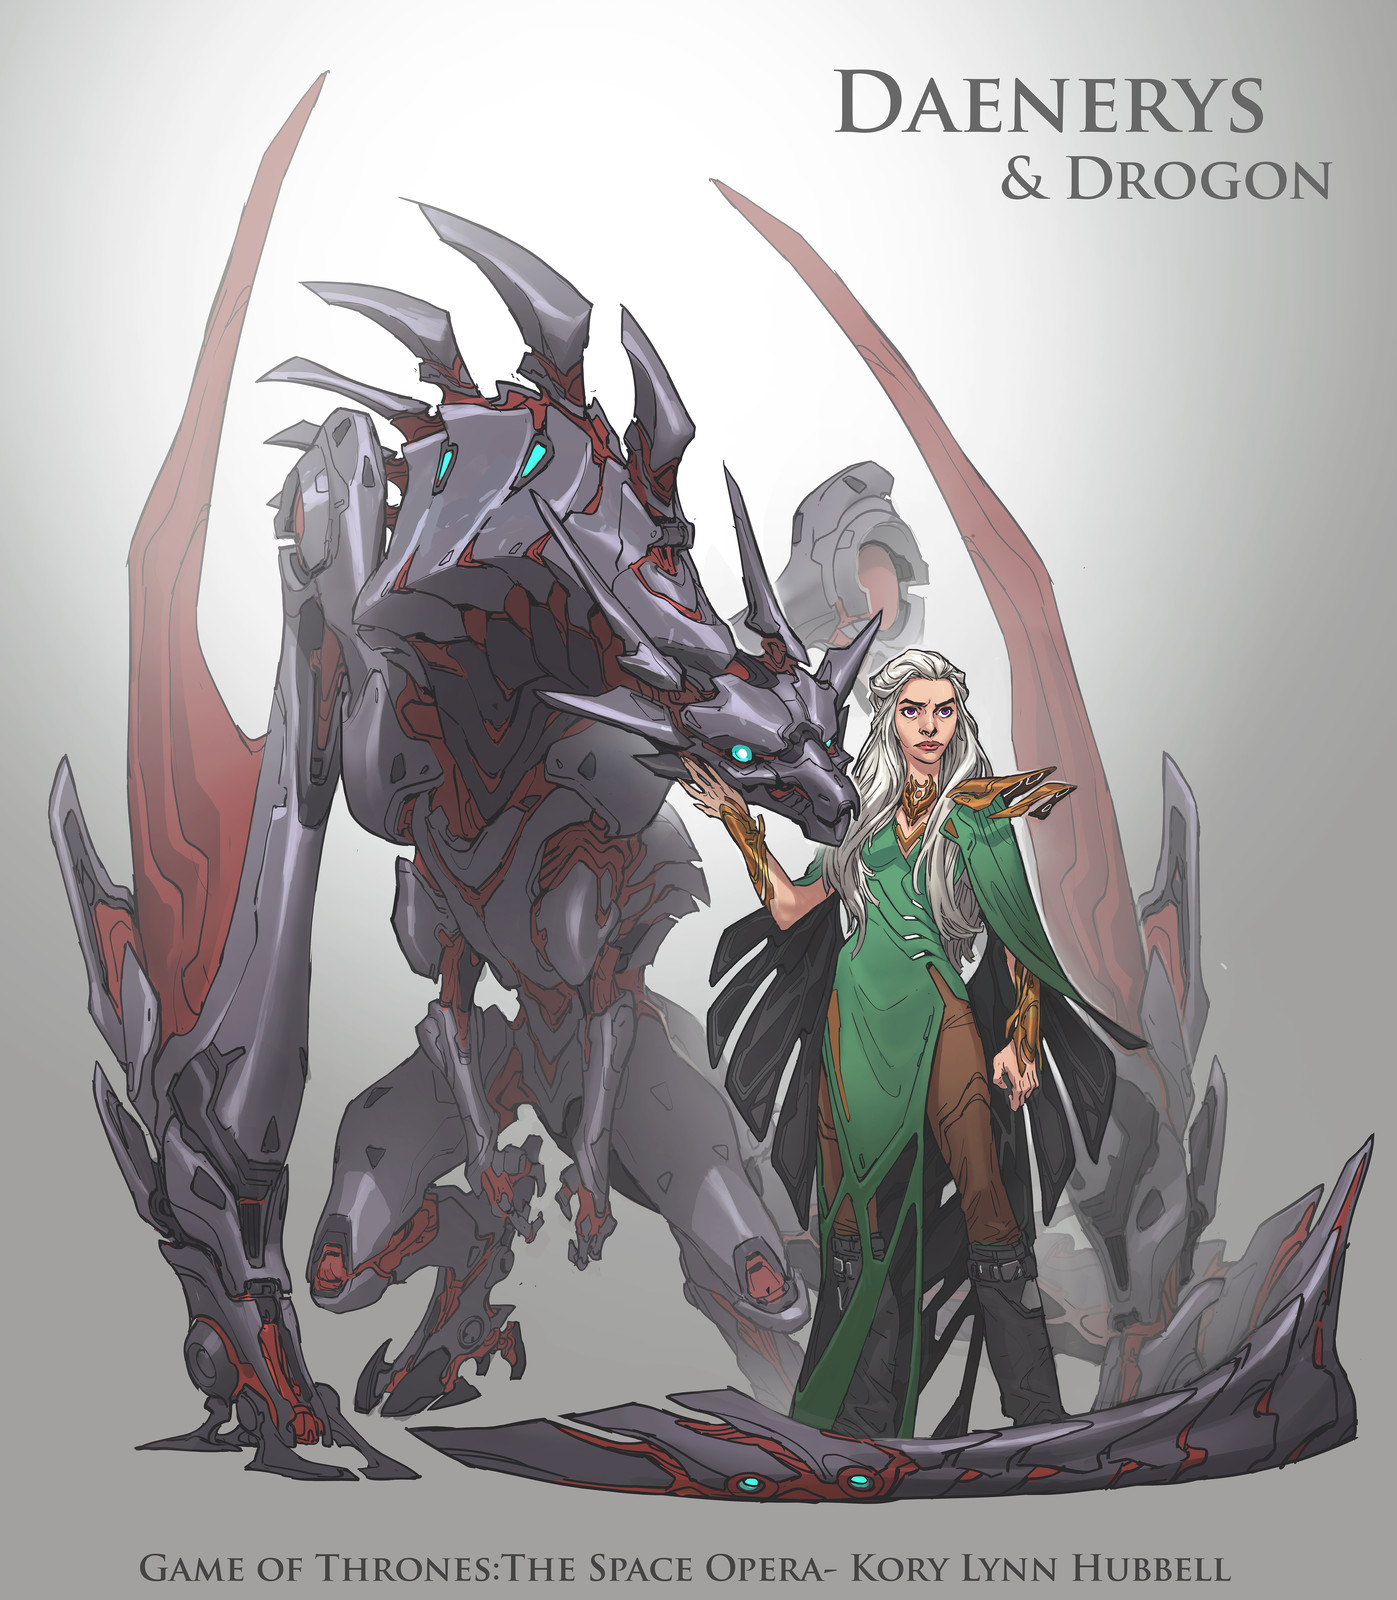 Game of Thrones, the Space Opera- Daenerys and Drogon